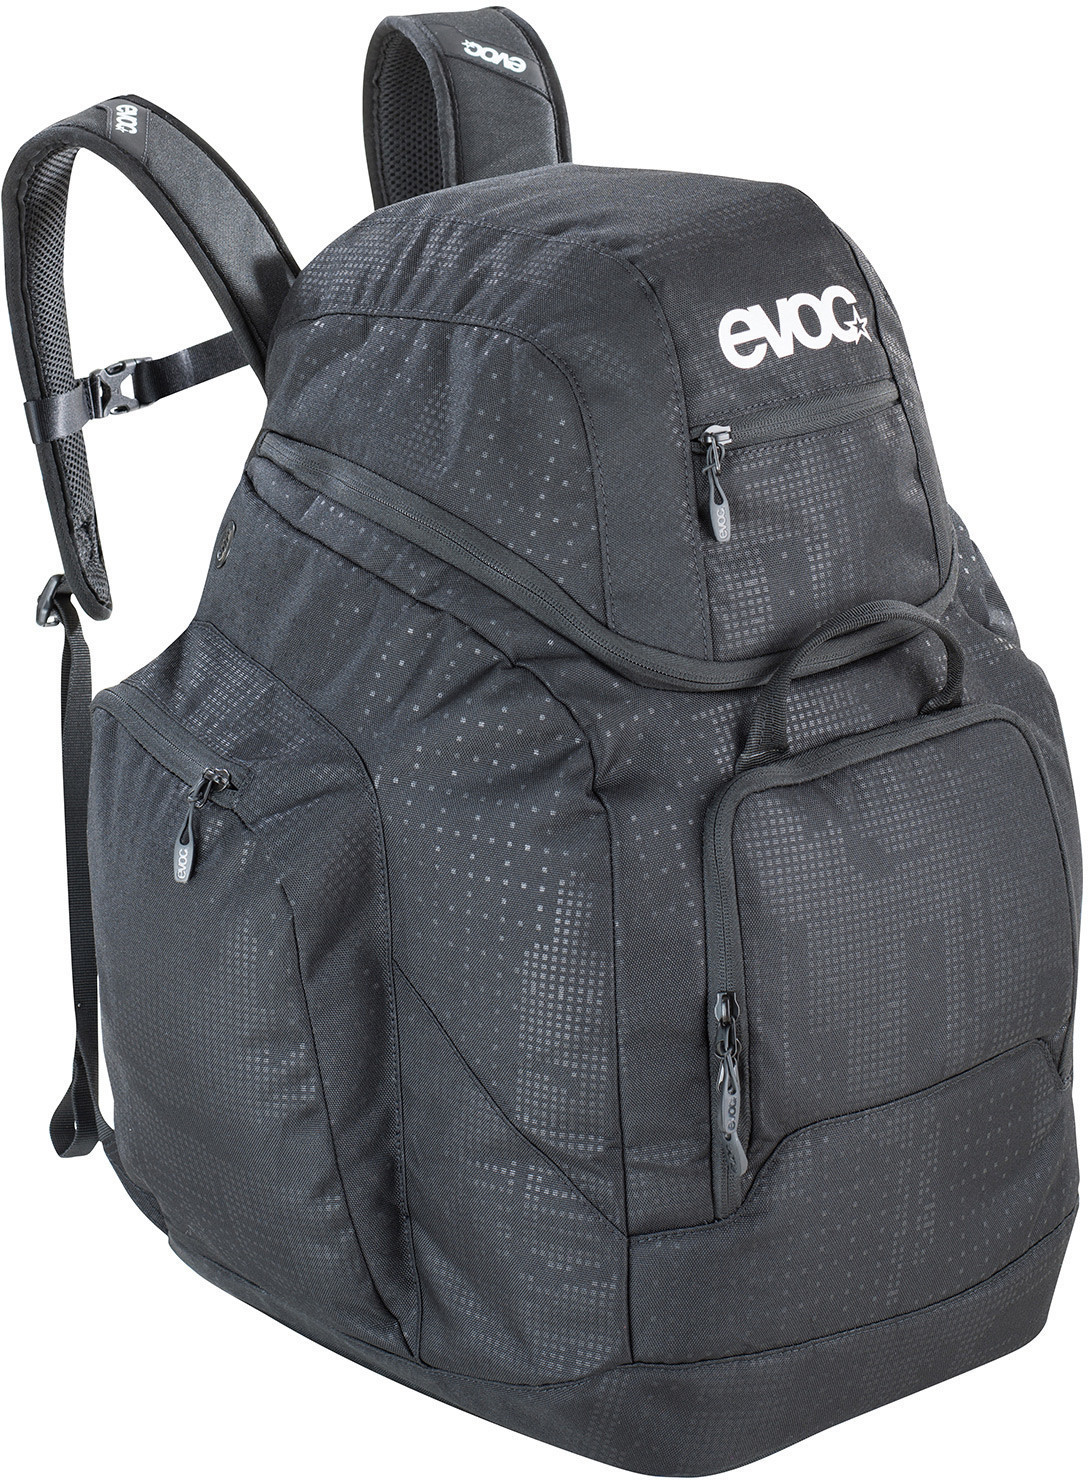 Image of Evoc Boot Helmet Backpack black